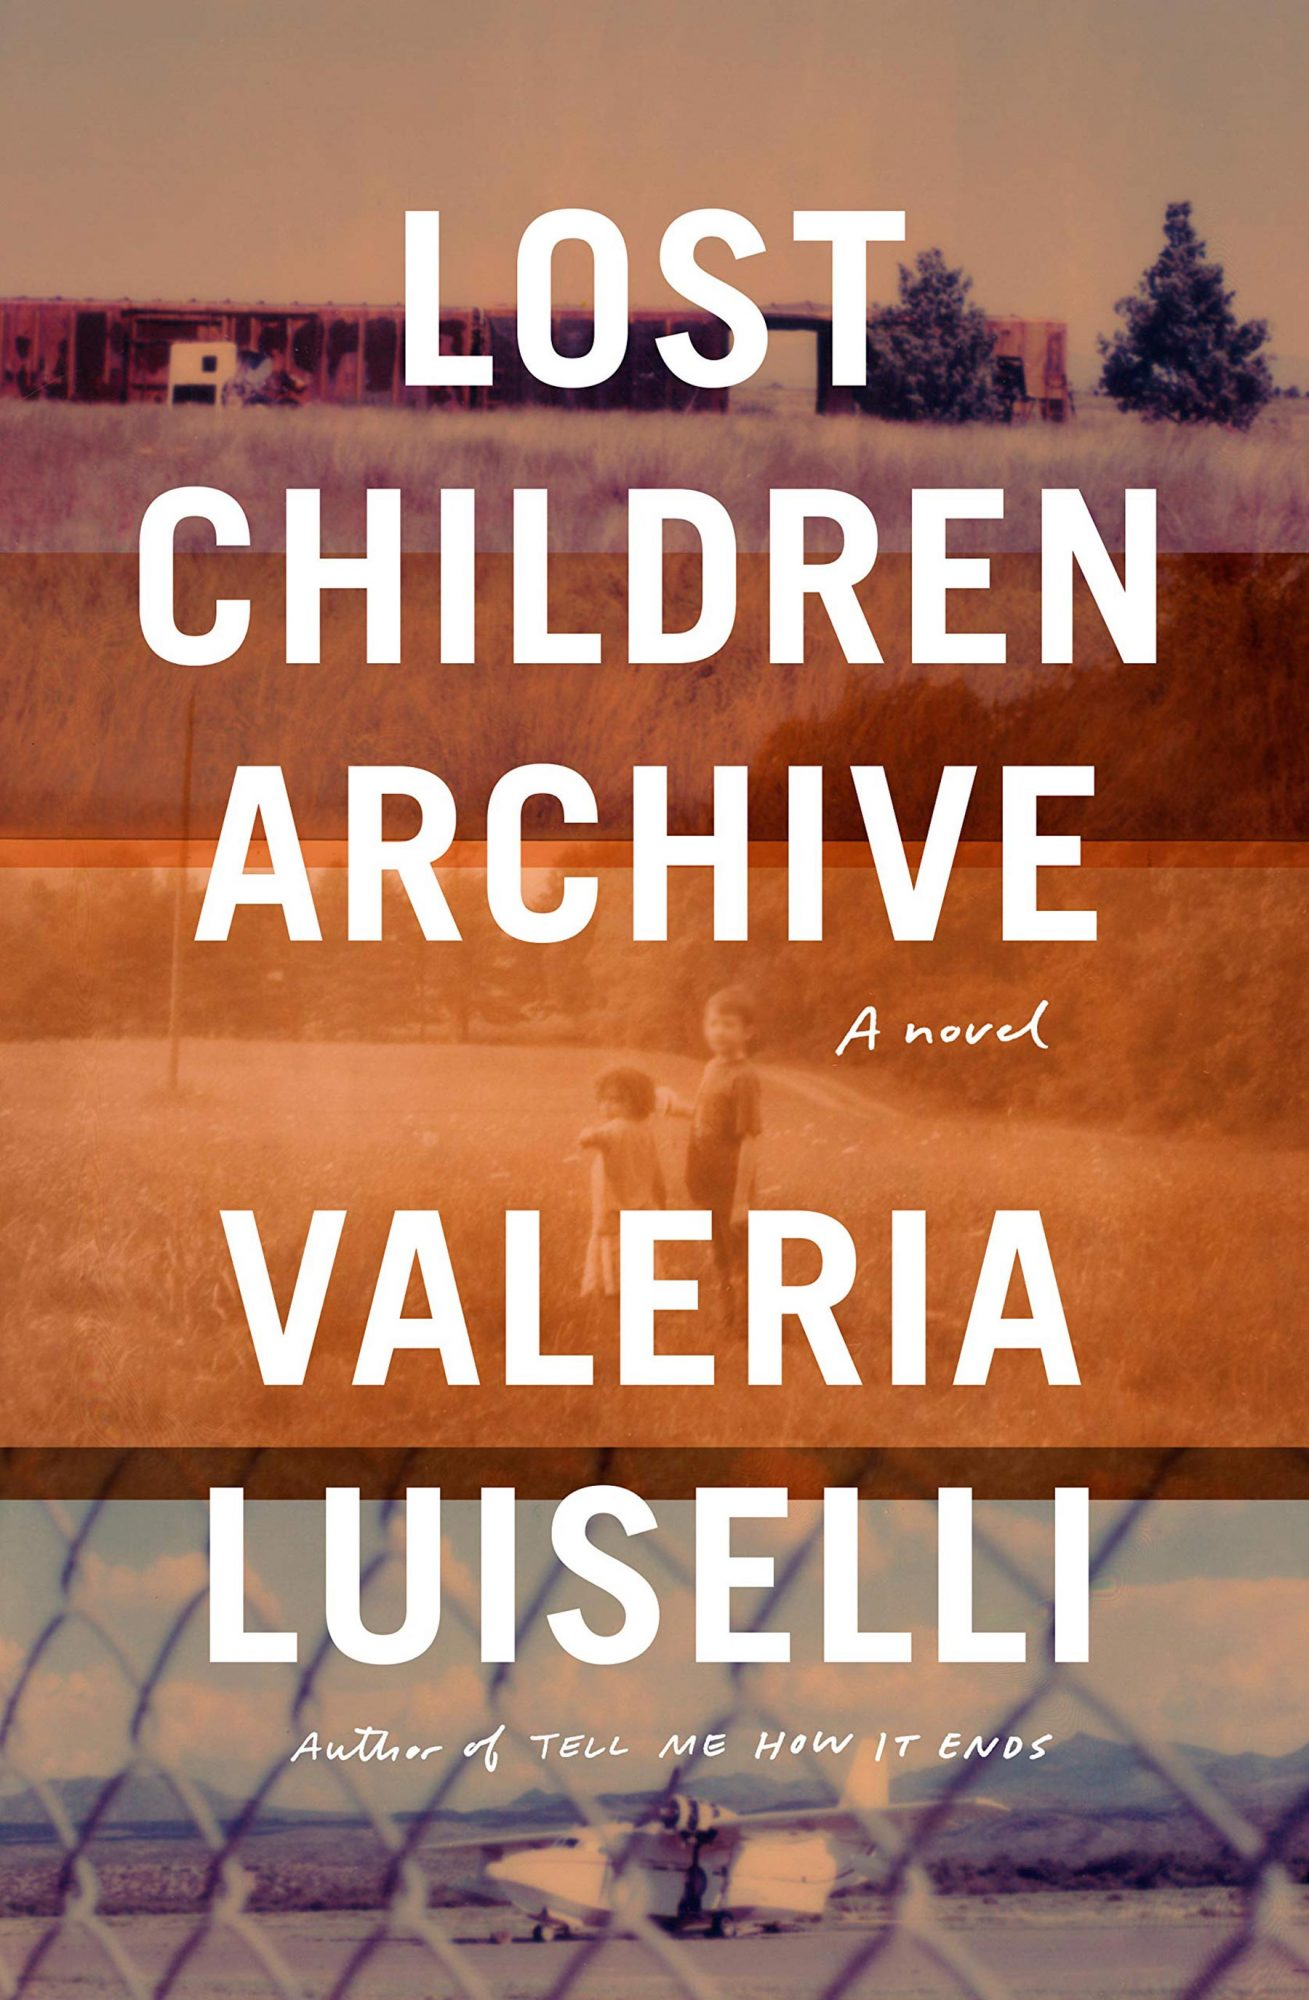 Valeria Luiselli, Lost Children ArchivePublisher: Knopf